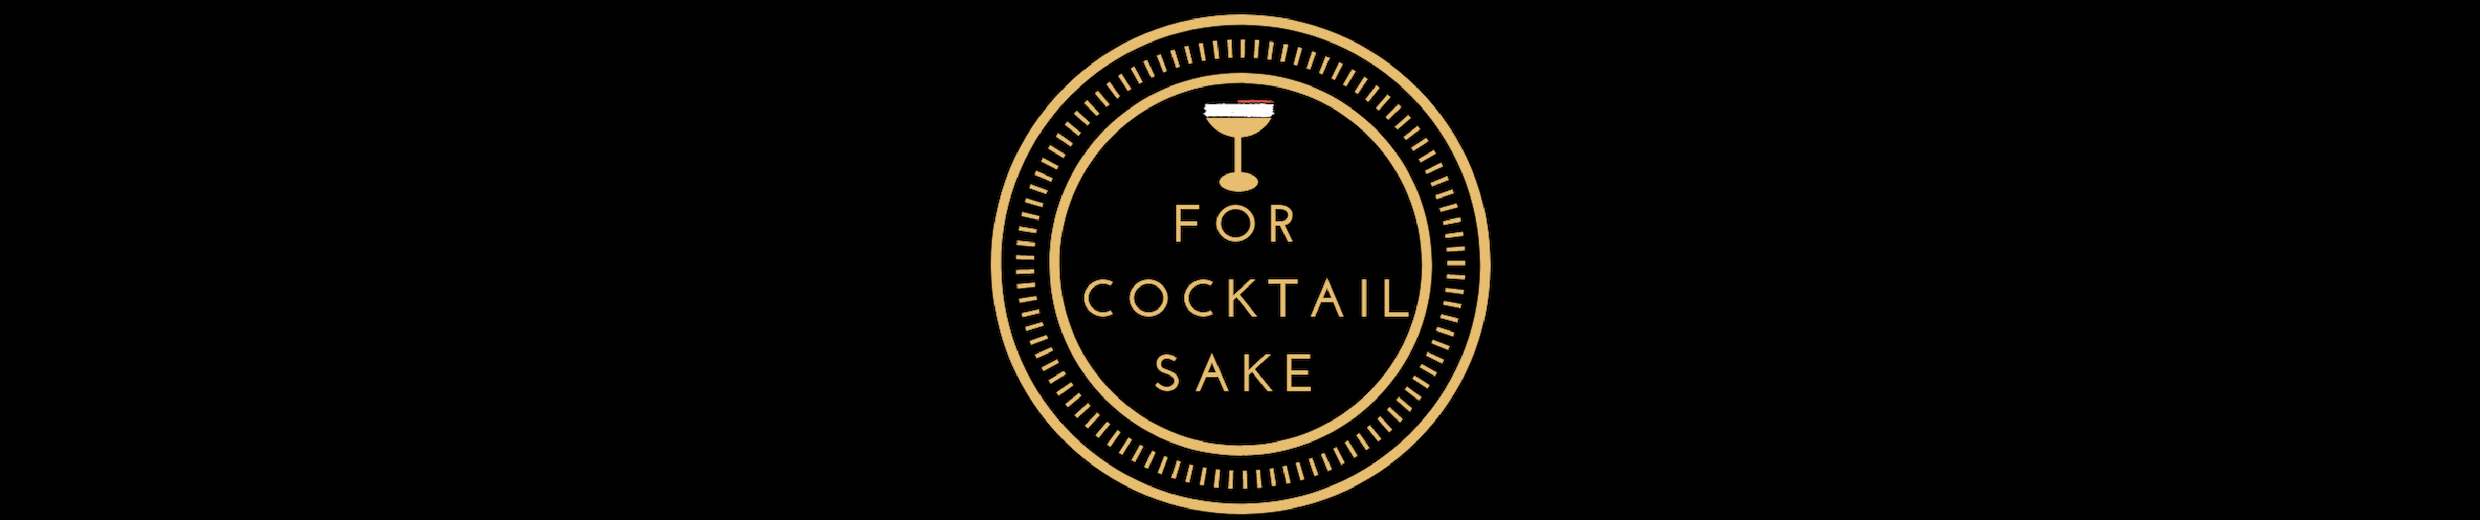 For Cocktail Sake